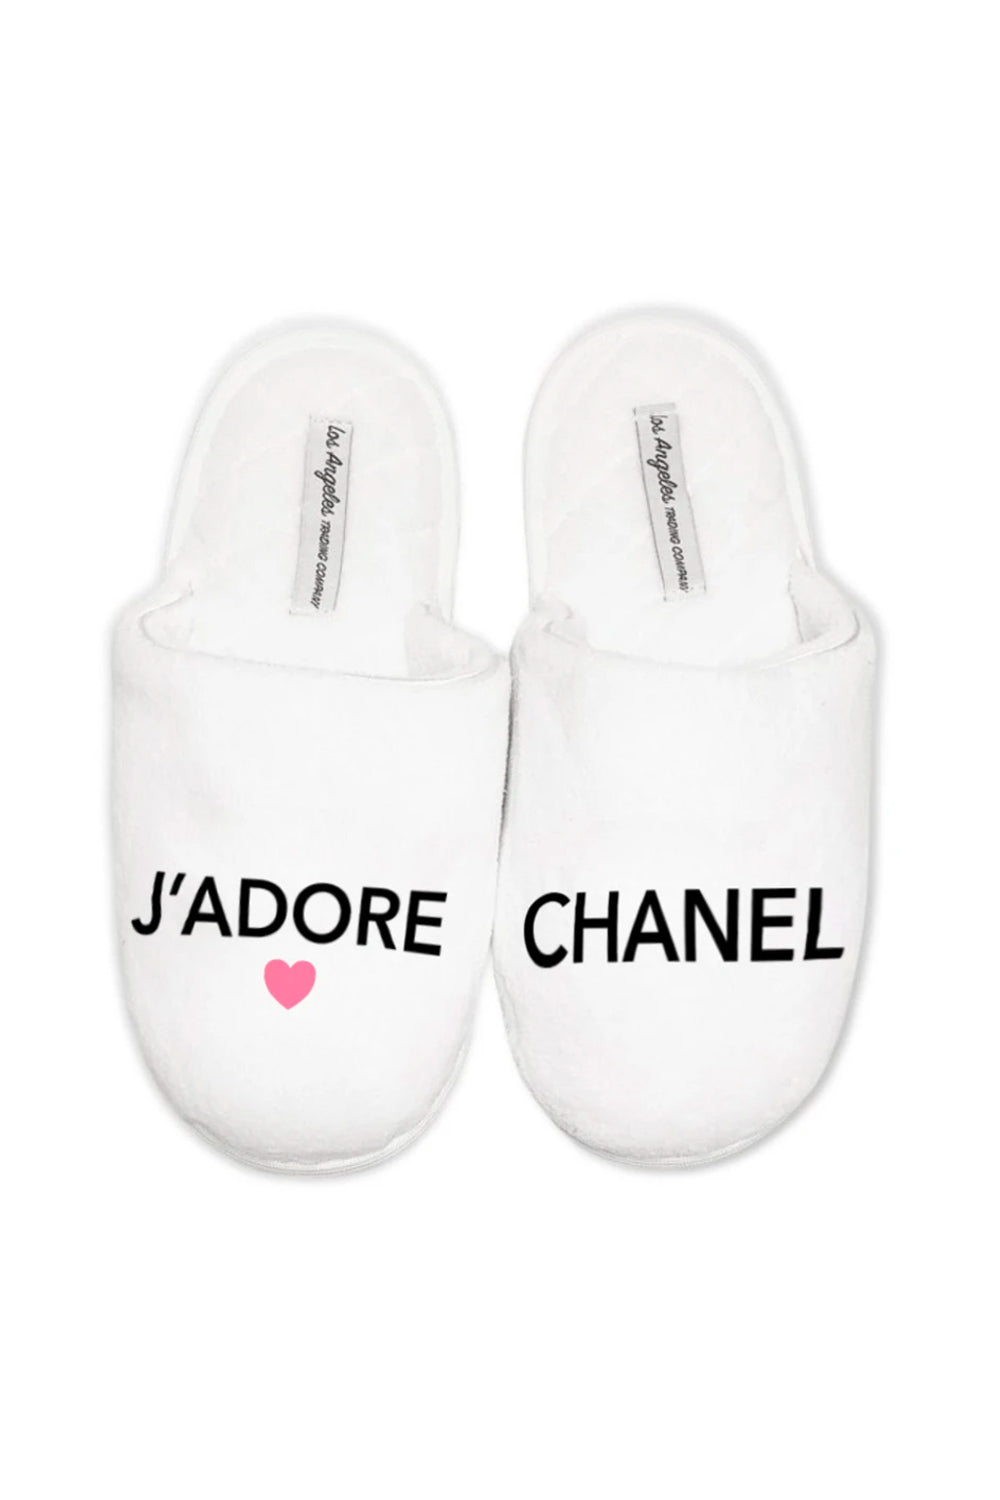 Adore Los Angeles 1) slippers - j'adore chanel – los angeles trading company